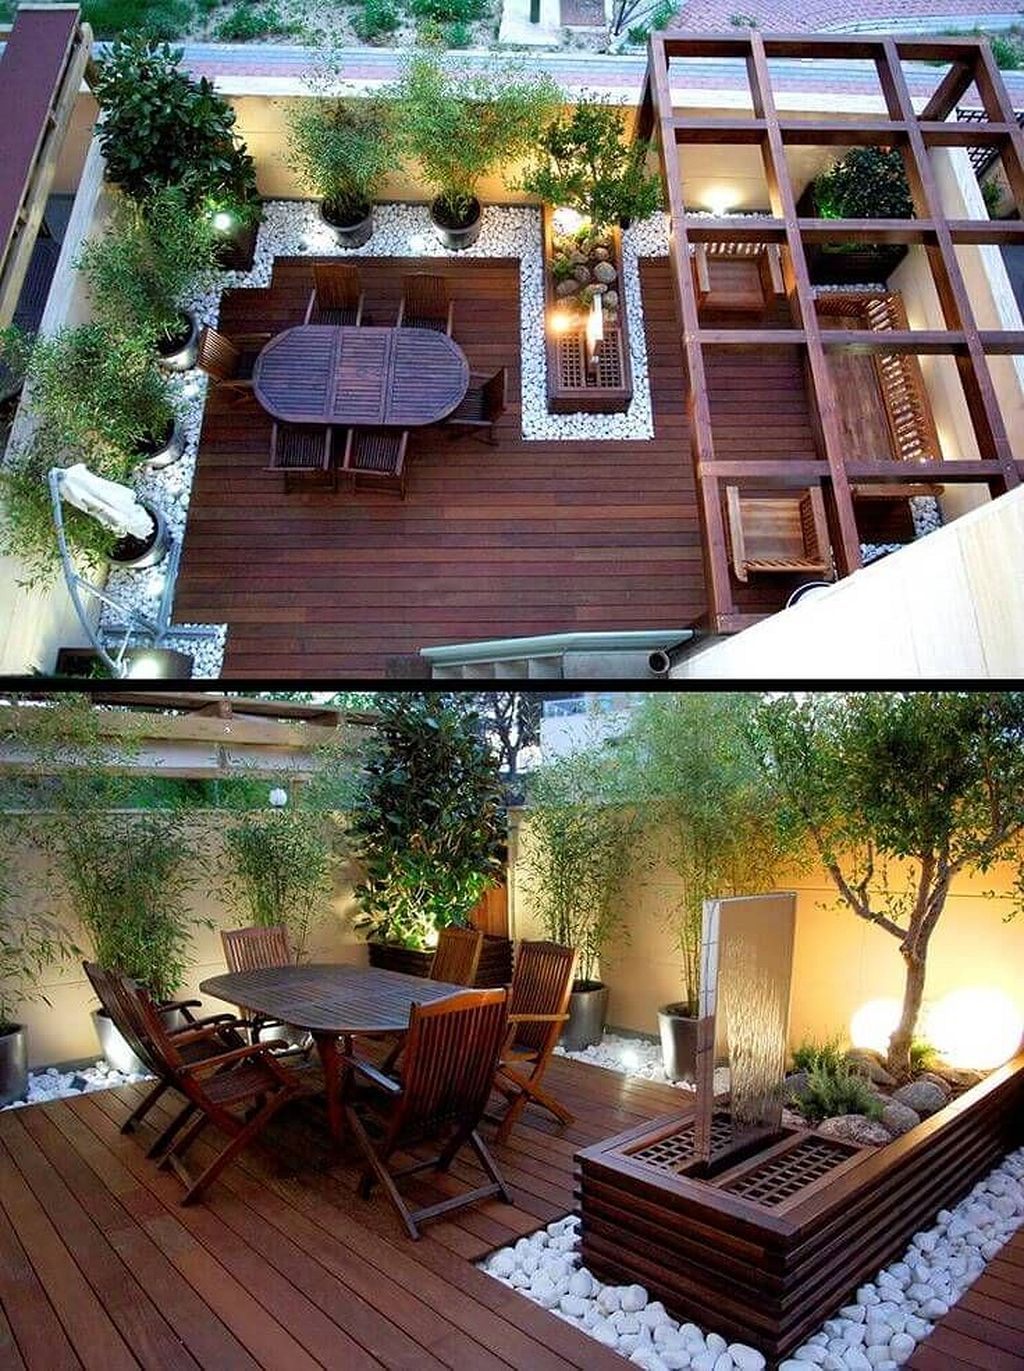 125 Small Backyard Landscaping Ideas | Balkon und Gärten